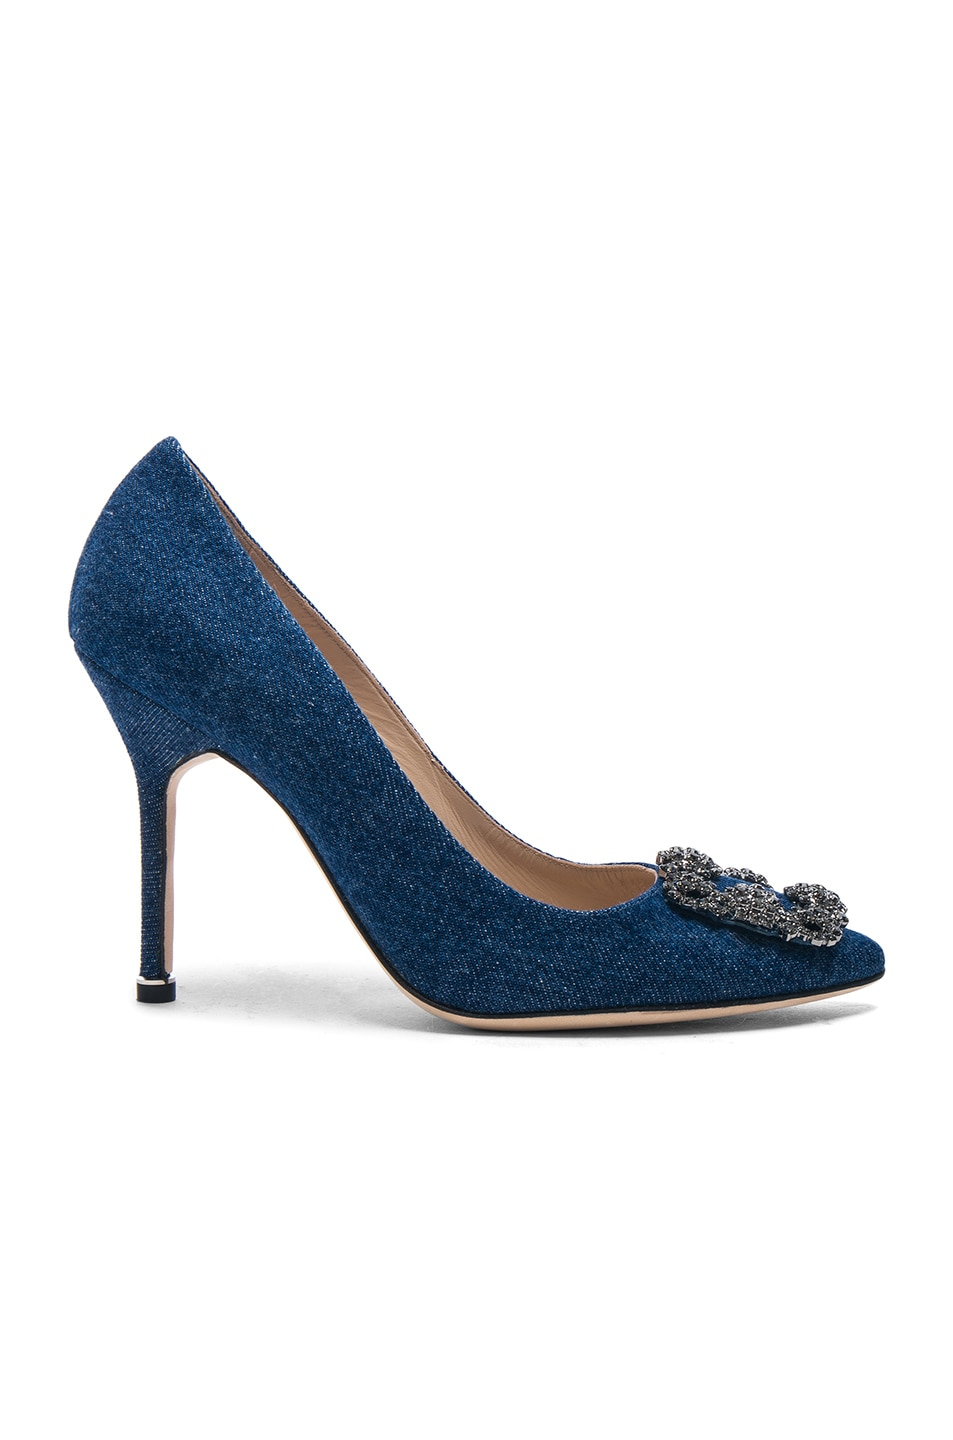 Image 1 of Manolo Blahnik Hangisi 105 Heel in Blue